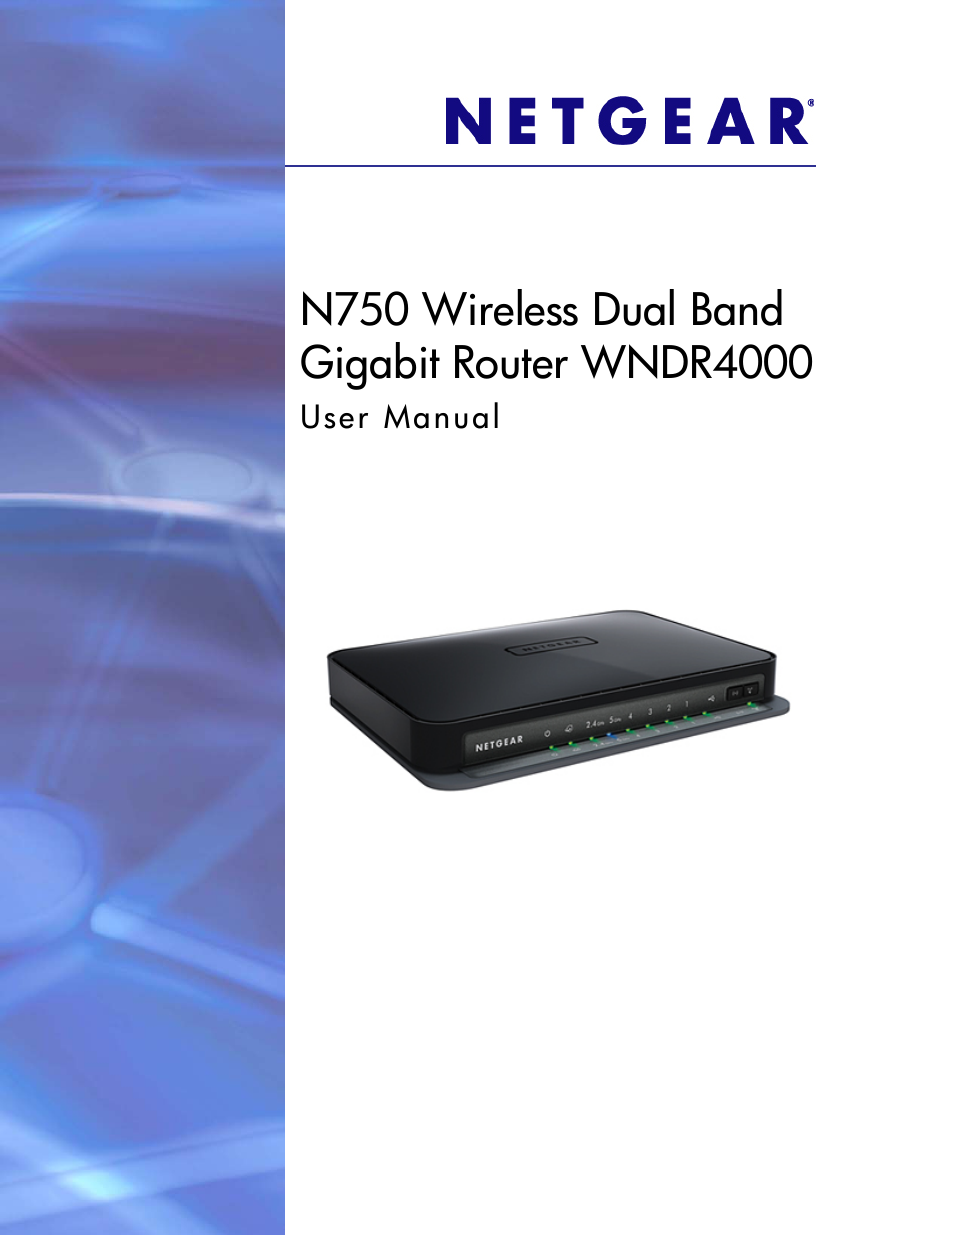 netgear n750 wireless dual band gigabit router wndr4000 user manual rh manualsdir com netgear n750 manuale italiano netgear n750 firmware upgrade